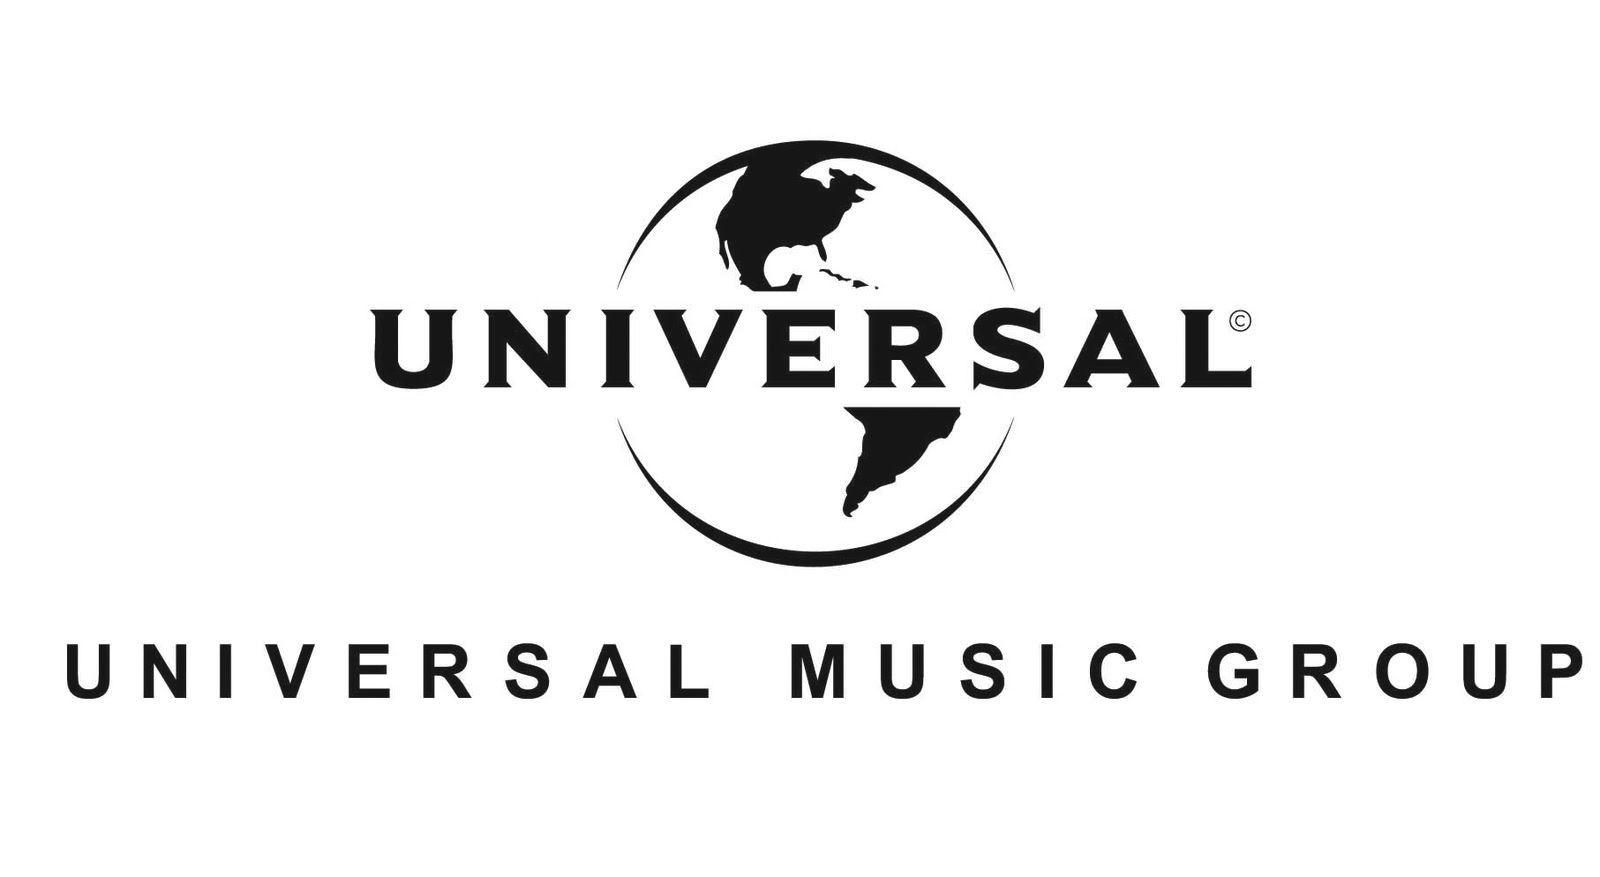 Universal-Music-Group.jpg